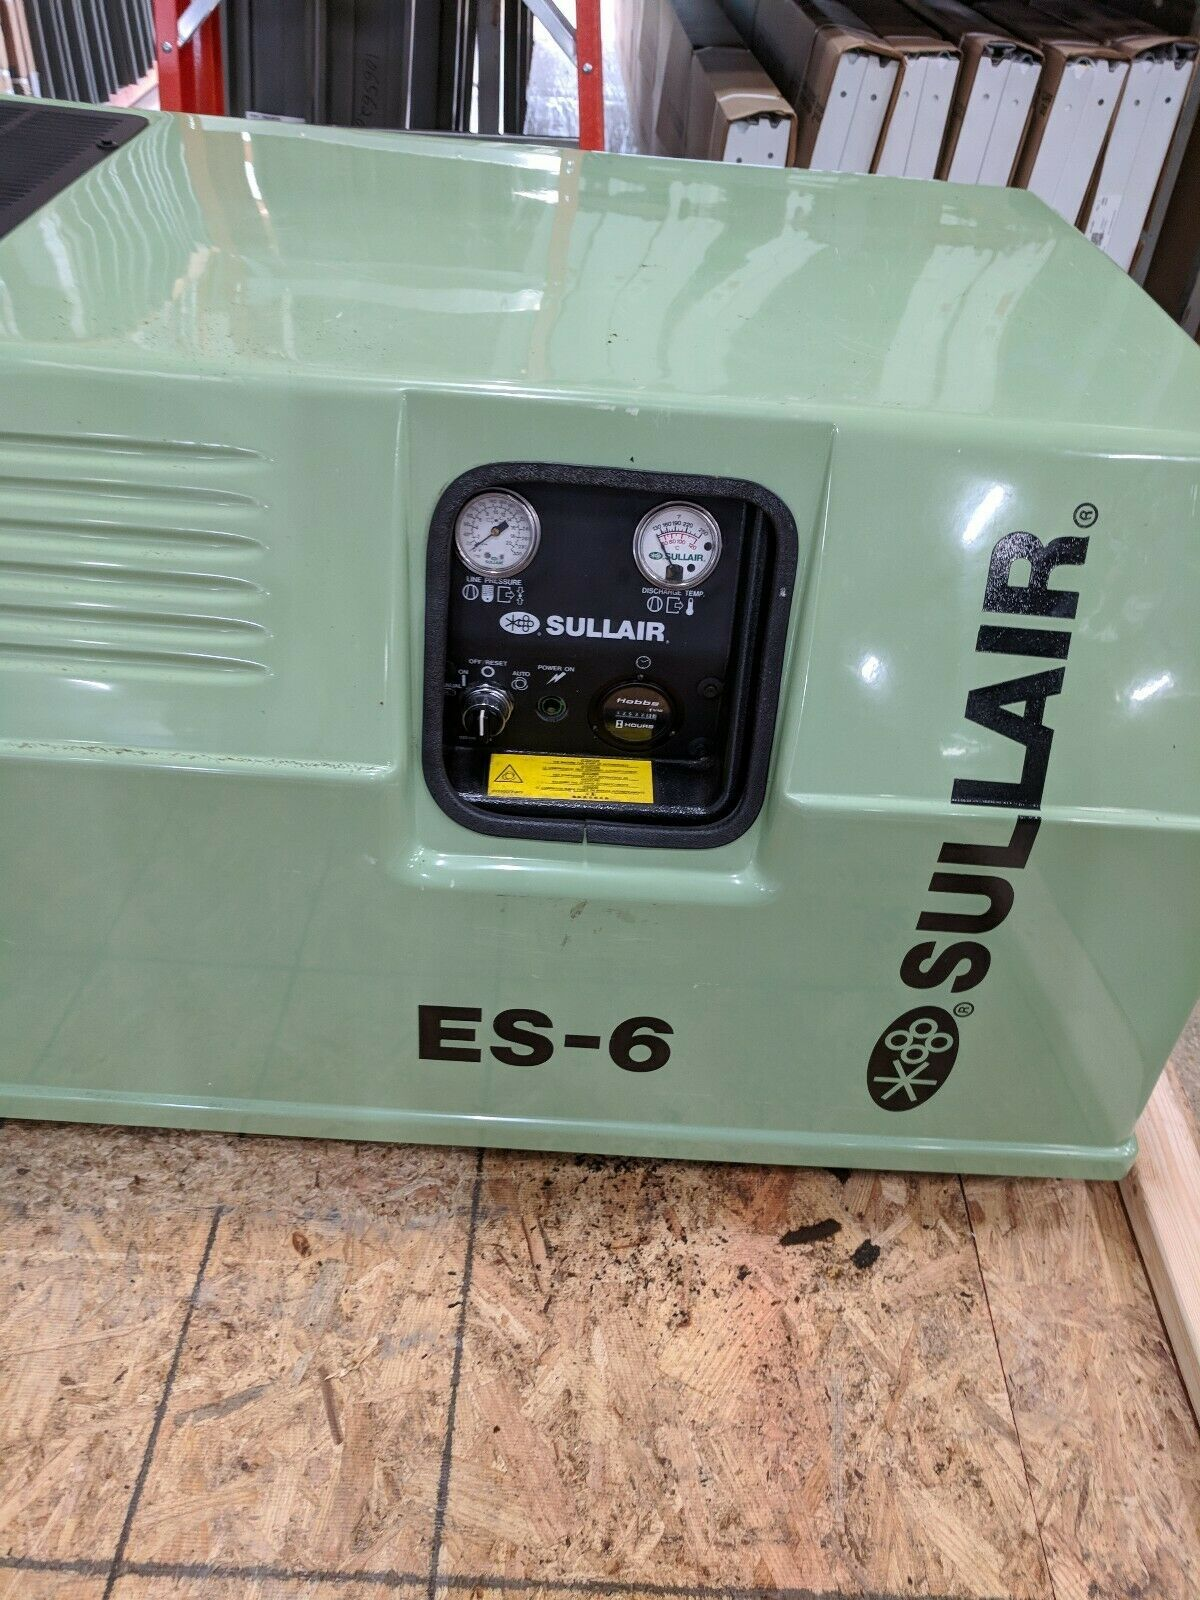 Sullair Compressor in 2020 Compressor, Air compressor, Ebay